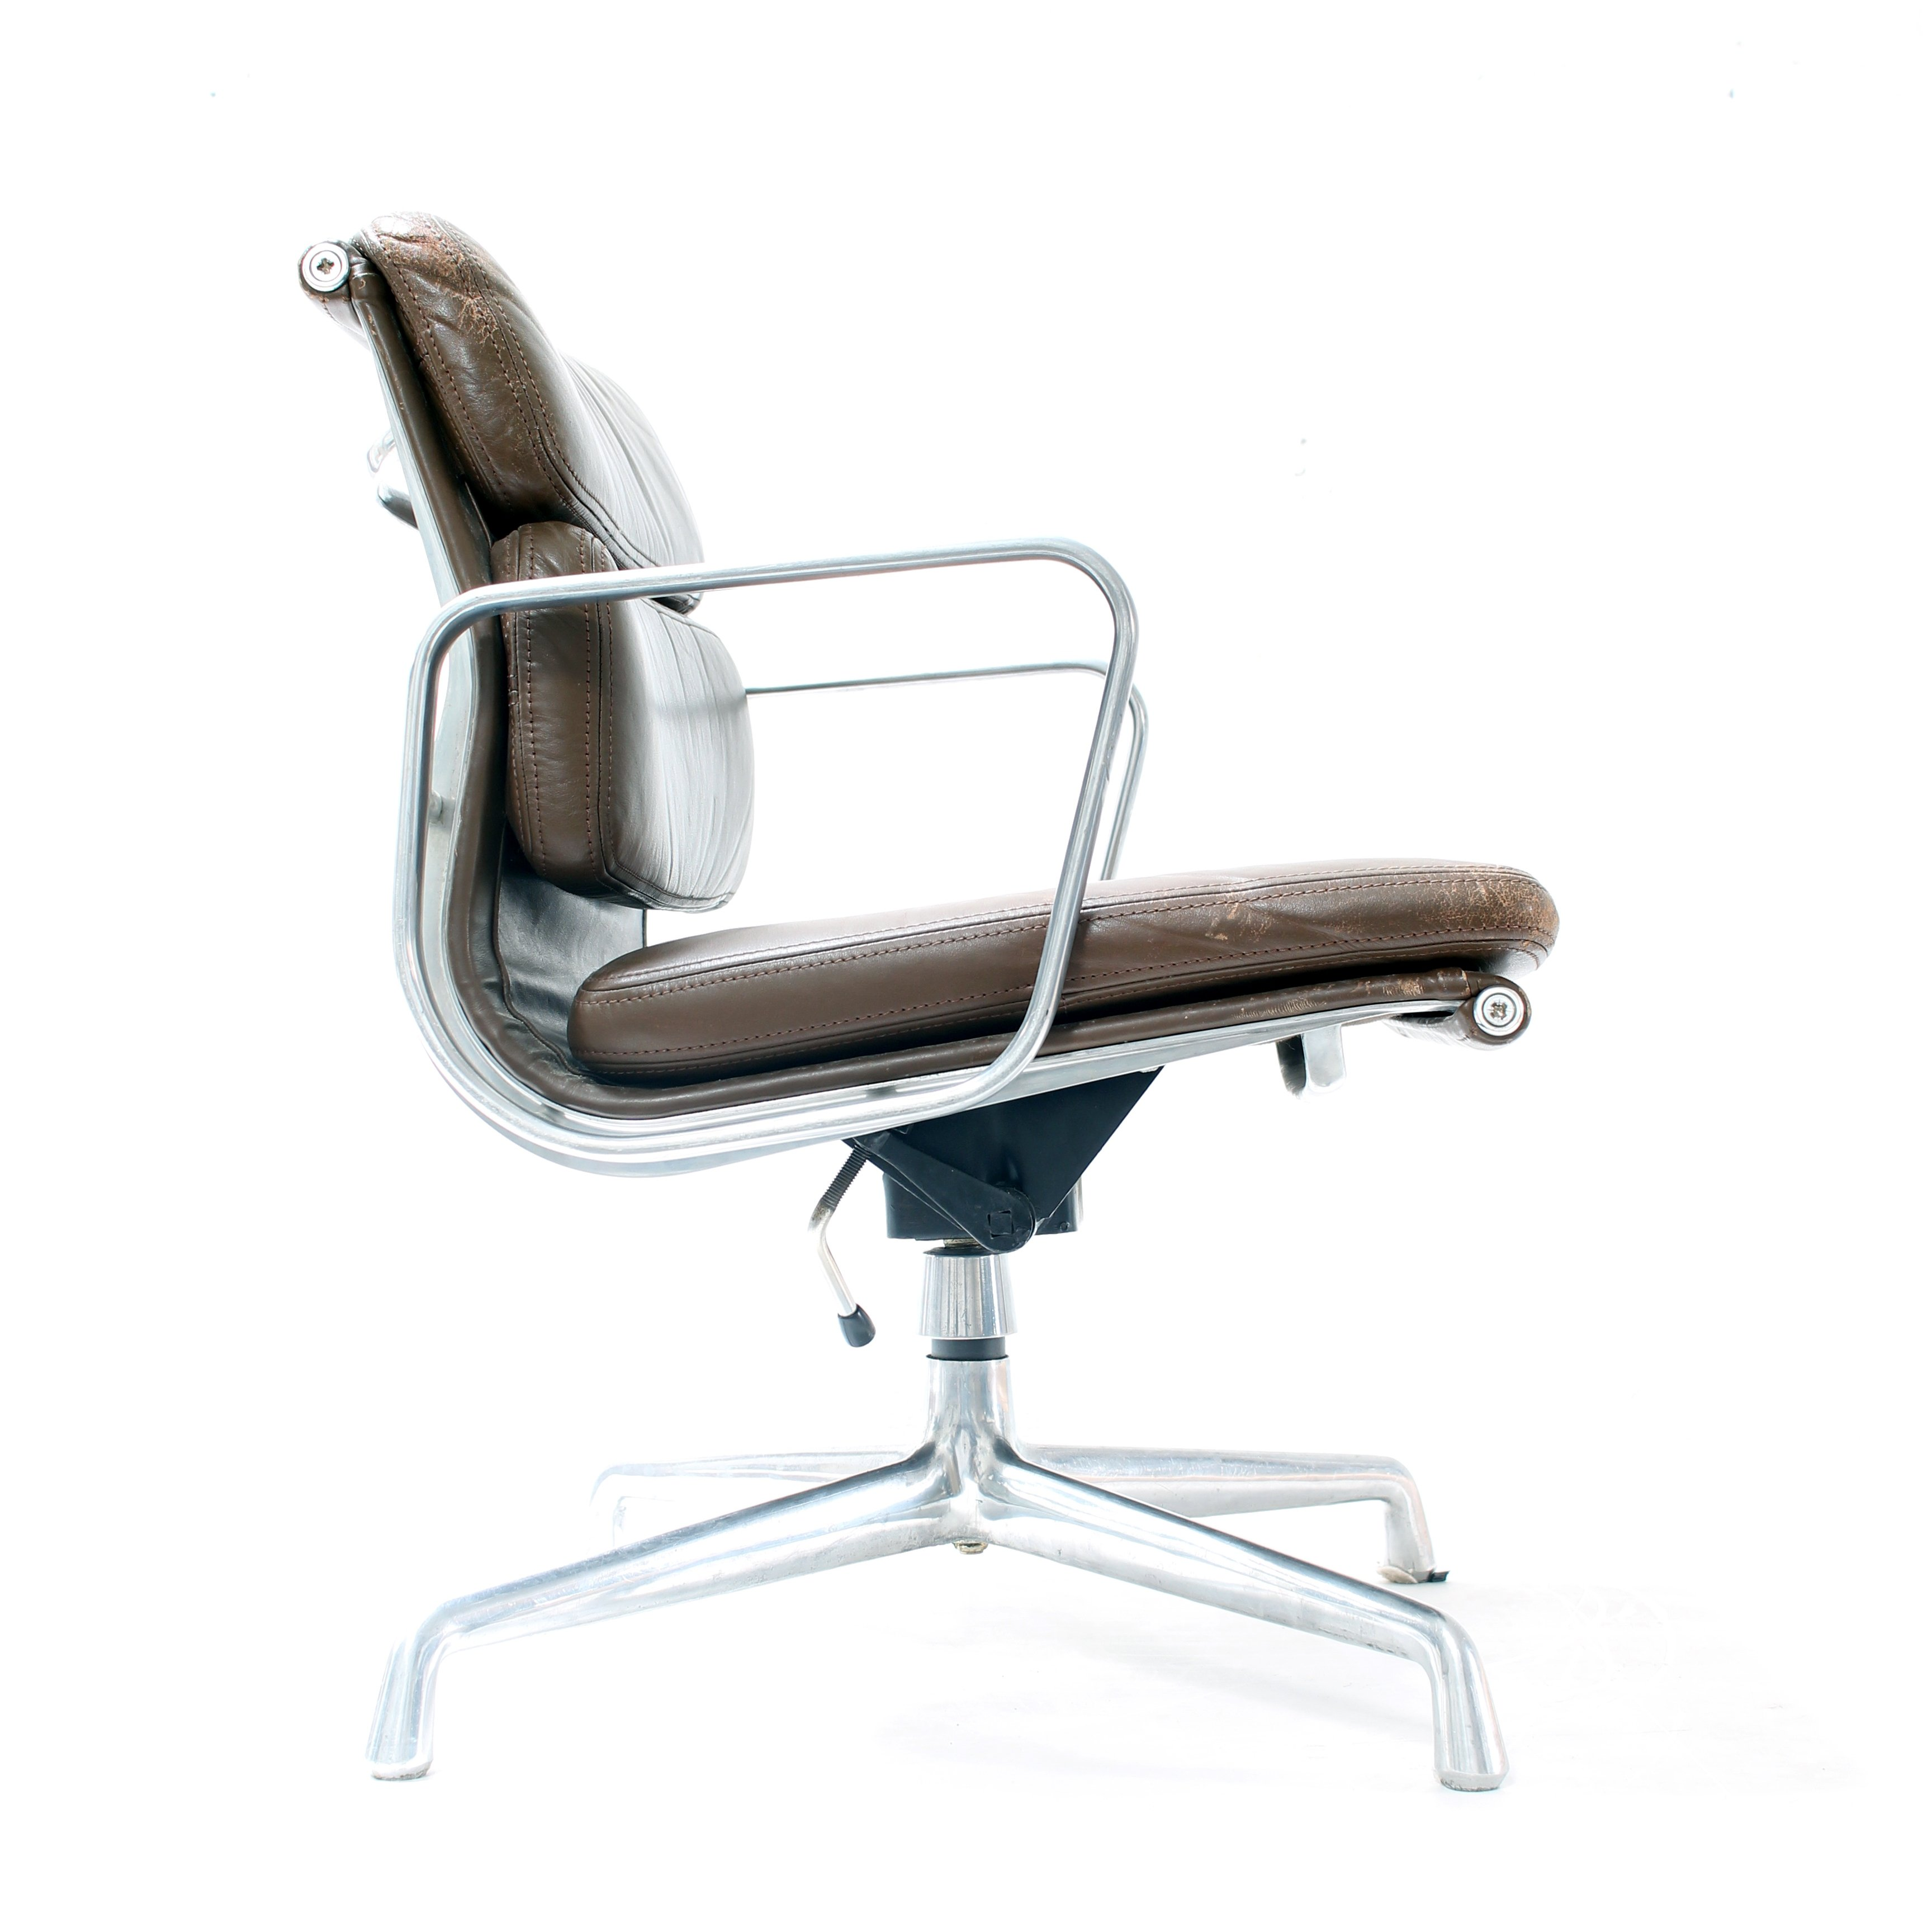 charles ray eames office chair 1970s 69076